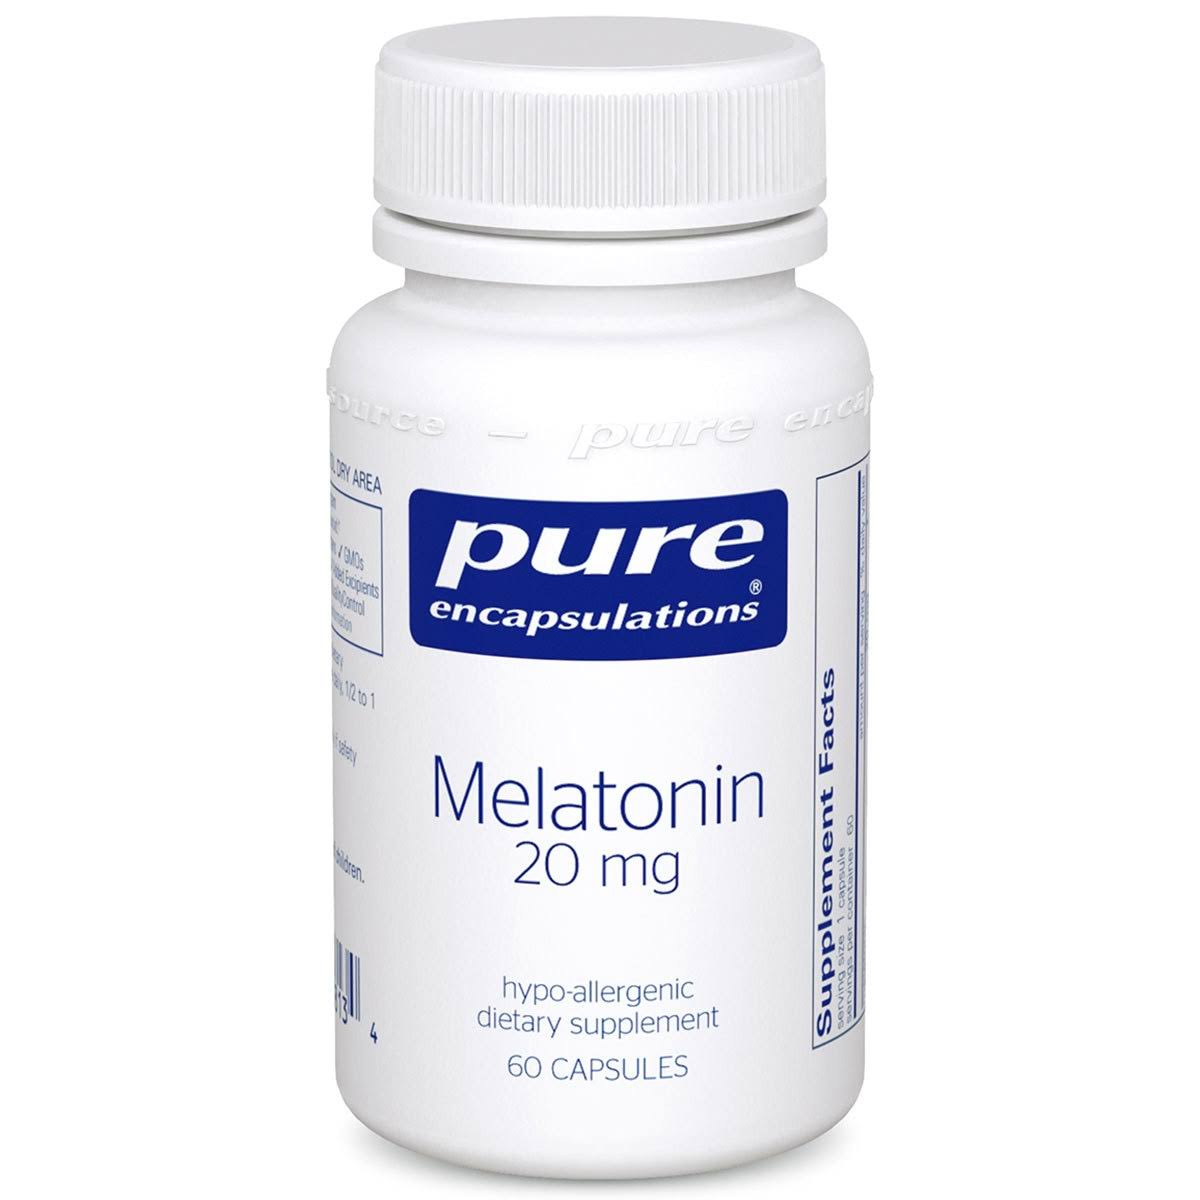 Pure Encapsulations Melatonin Dietary Supplement - 60ct